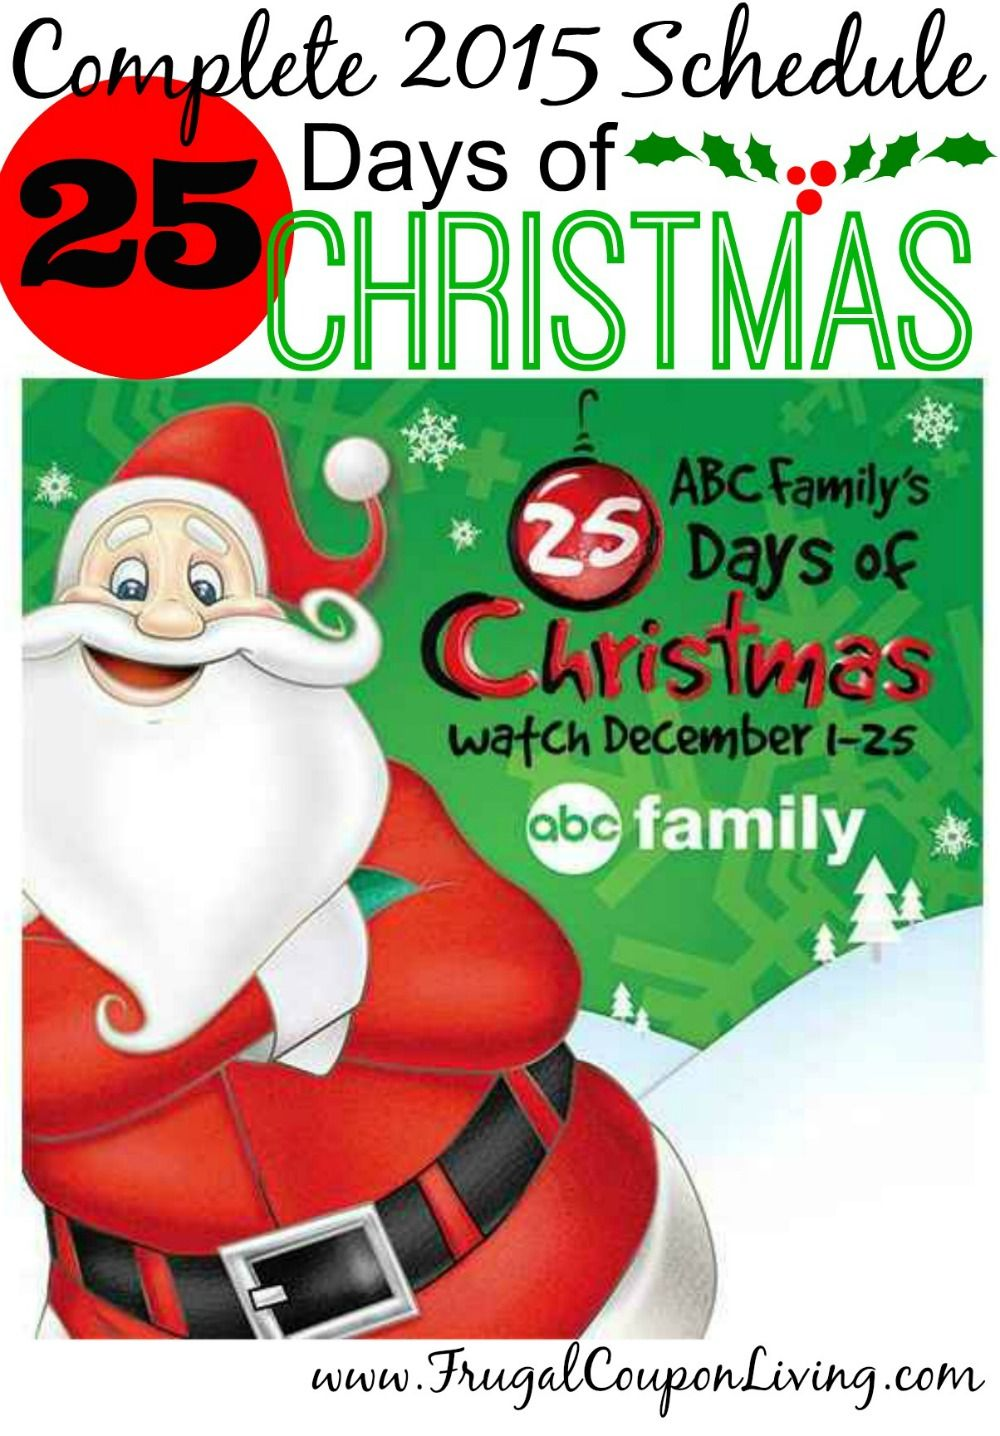 Abc Family 25 Days Of Christmas 2015 Schedule With Images